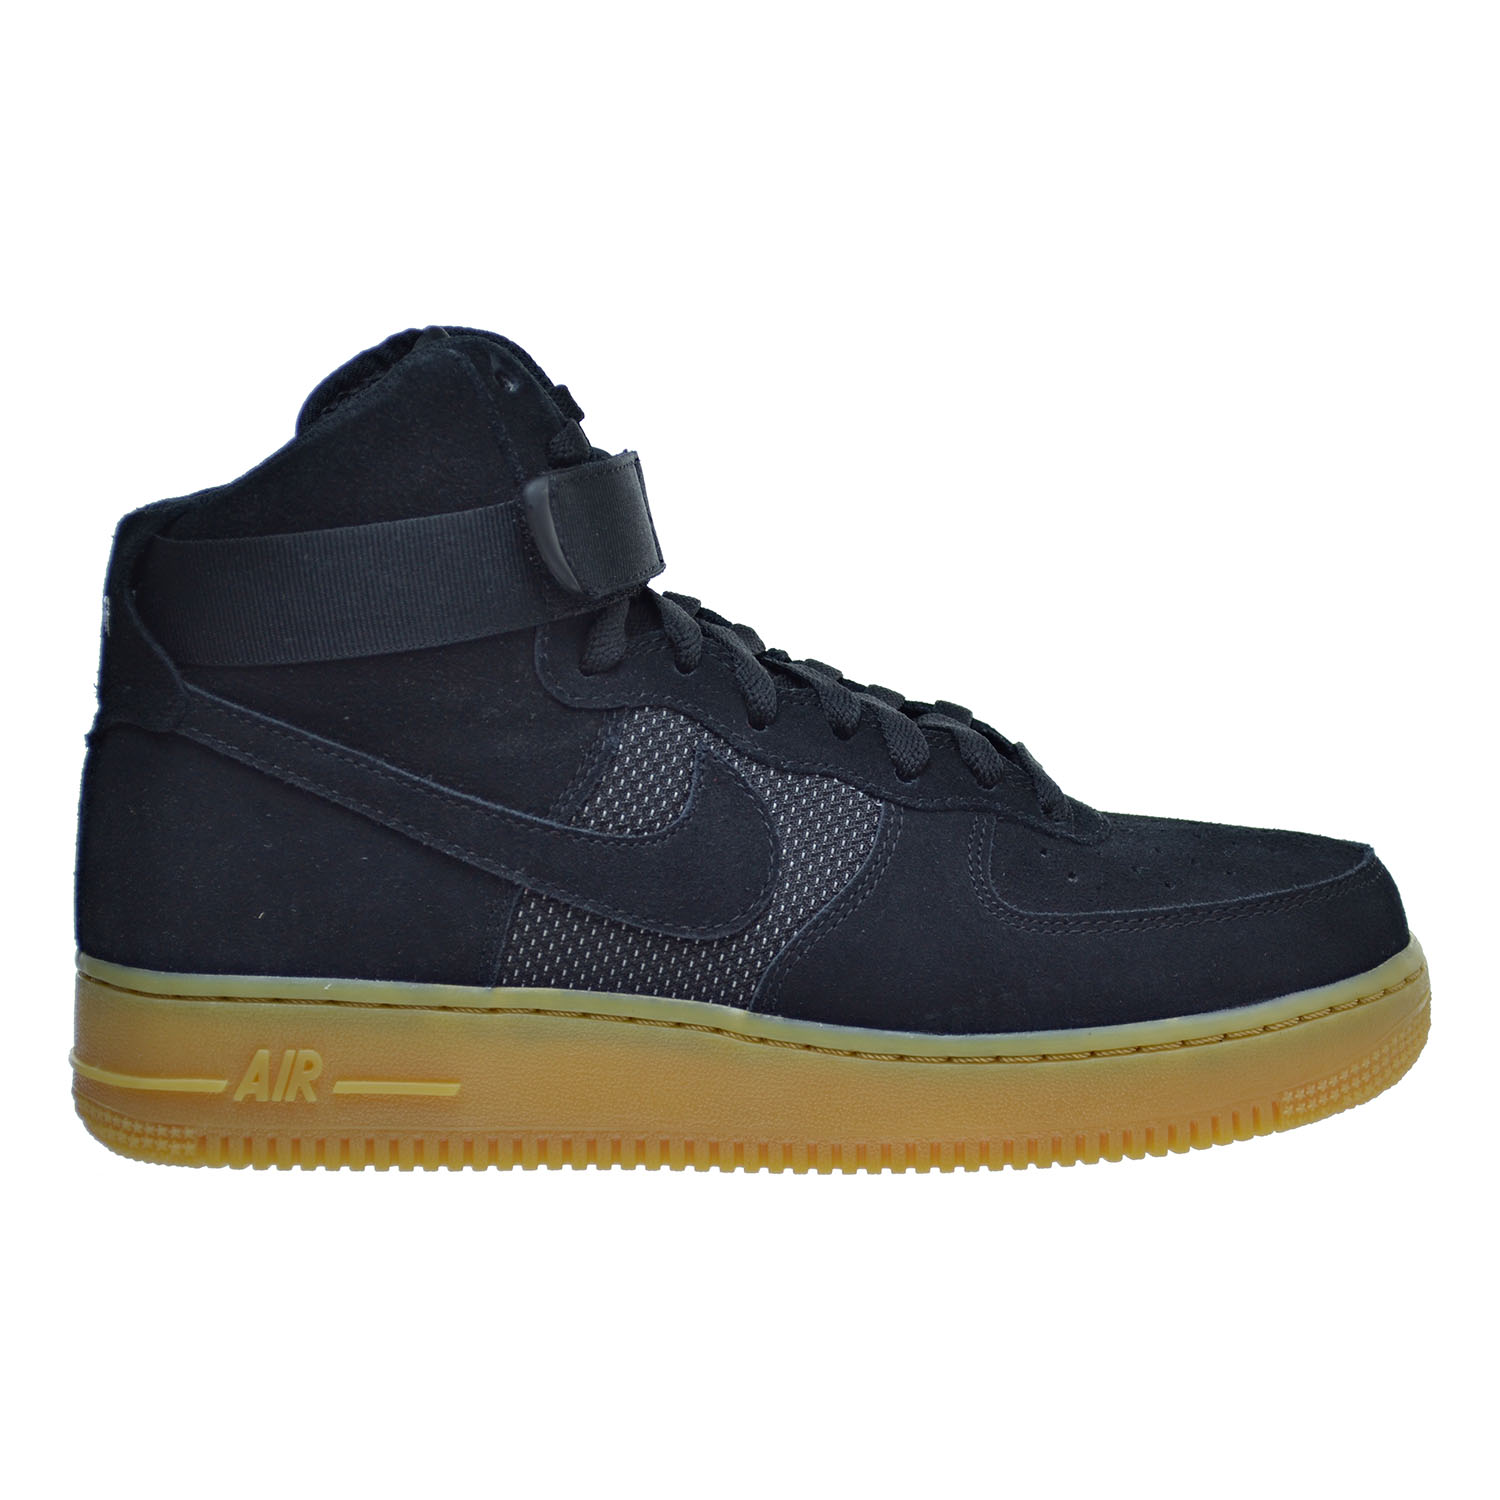 Nike Air Force 1 High '07 LV8 Men's Shoes Black/Black/Gum...